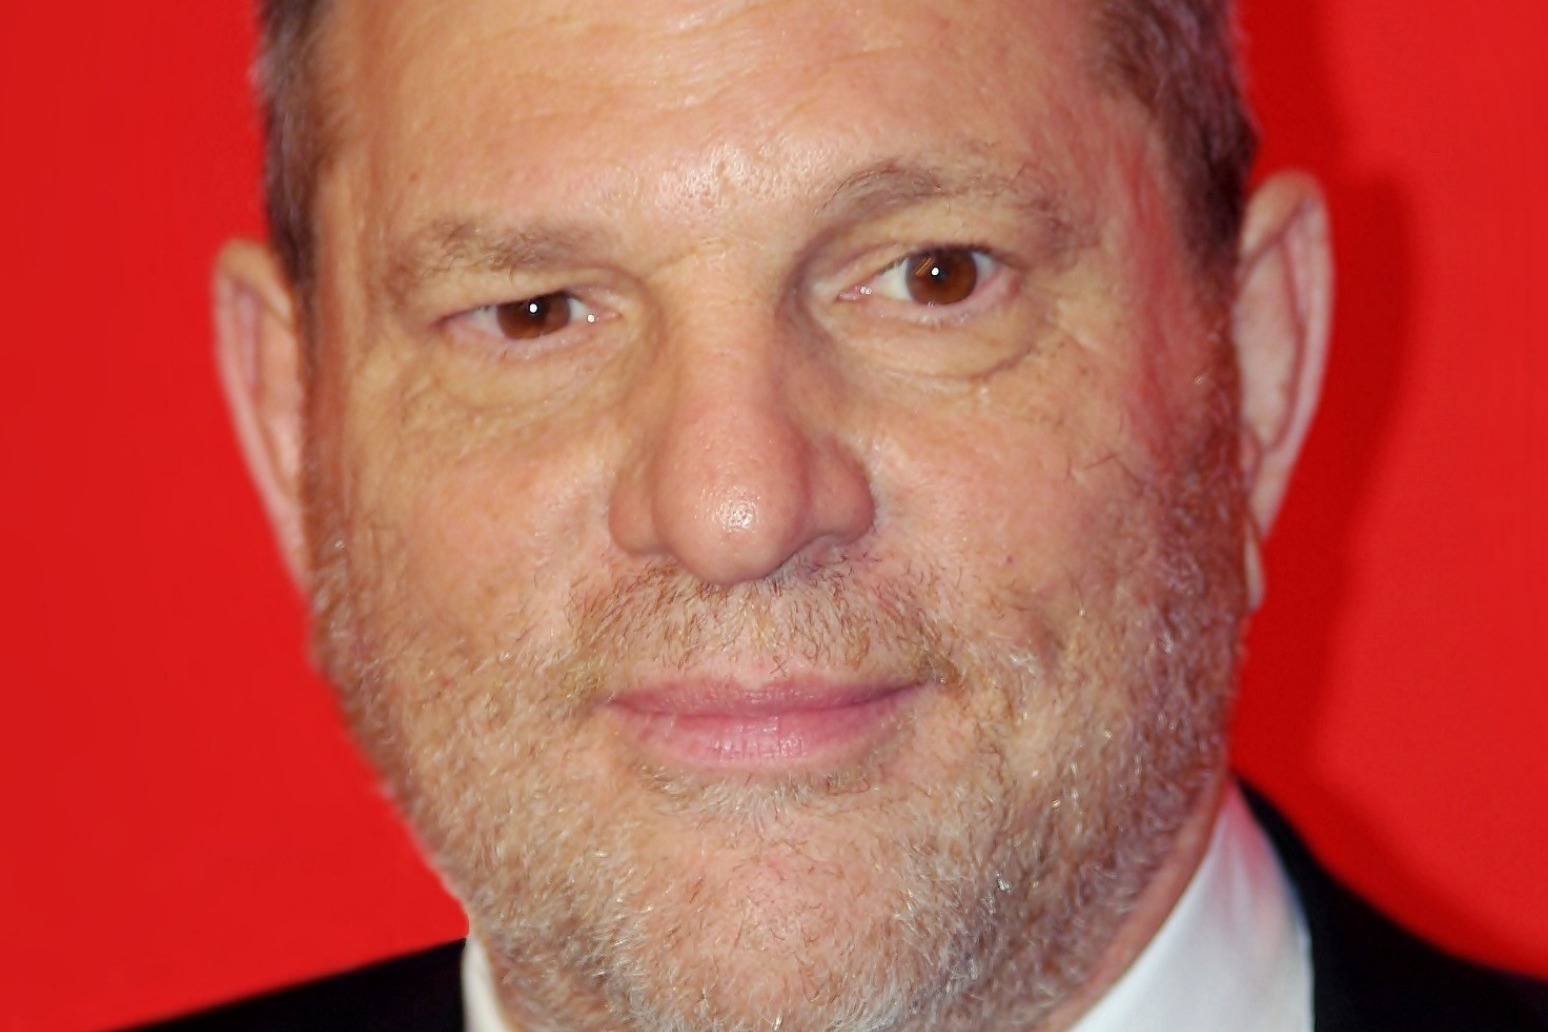 Weinstein charged with offences in New York after surrendering to police